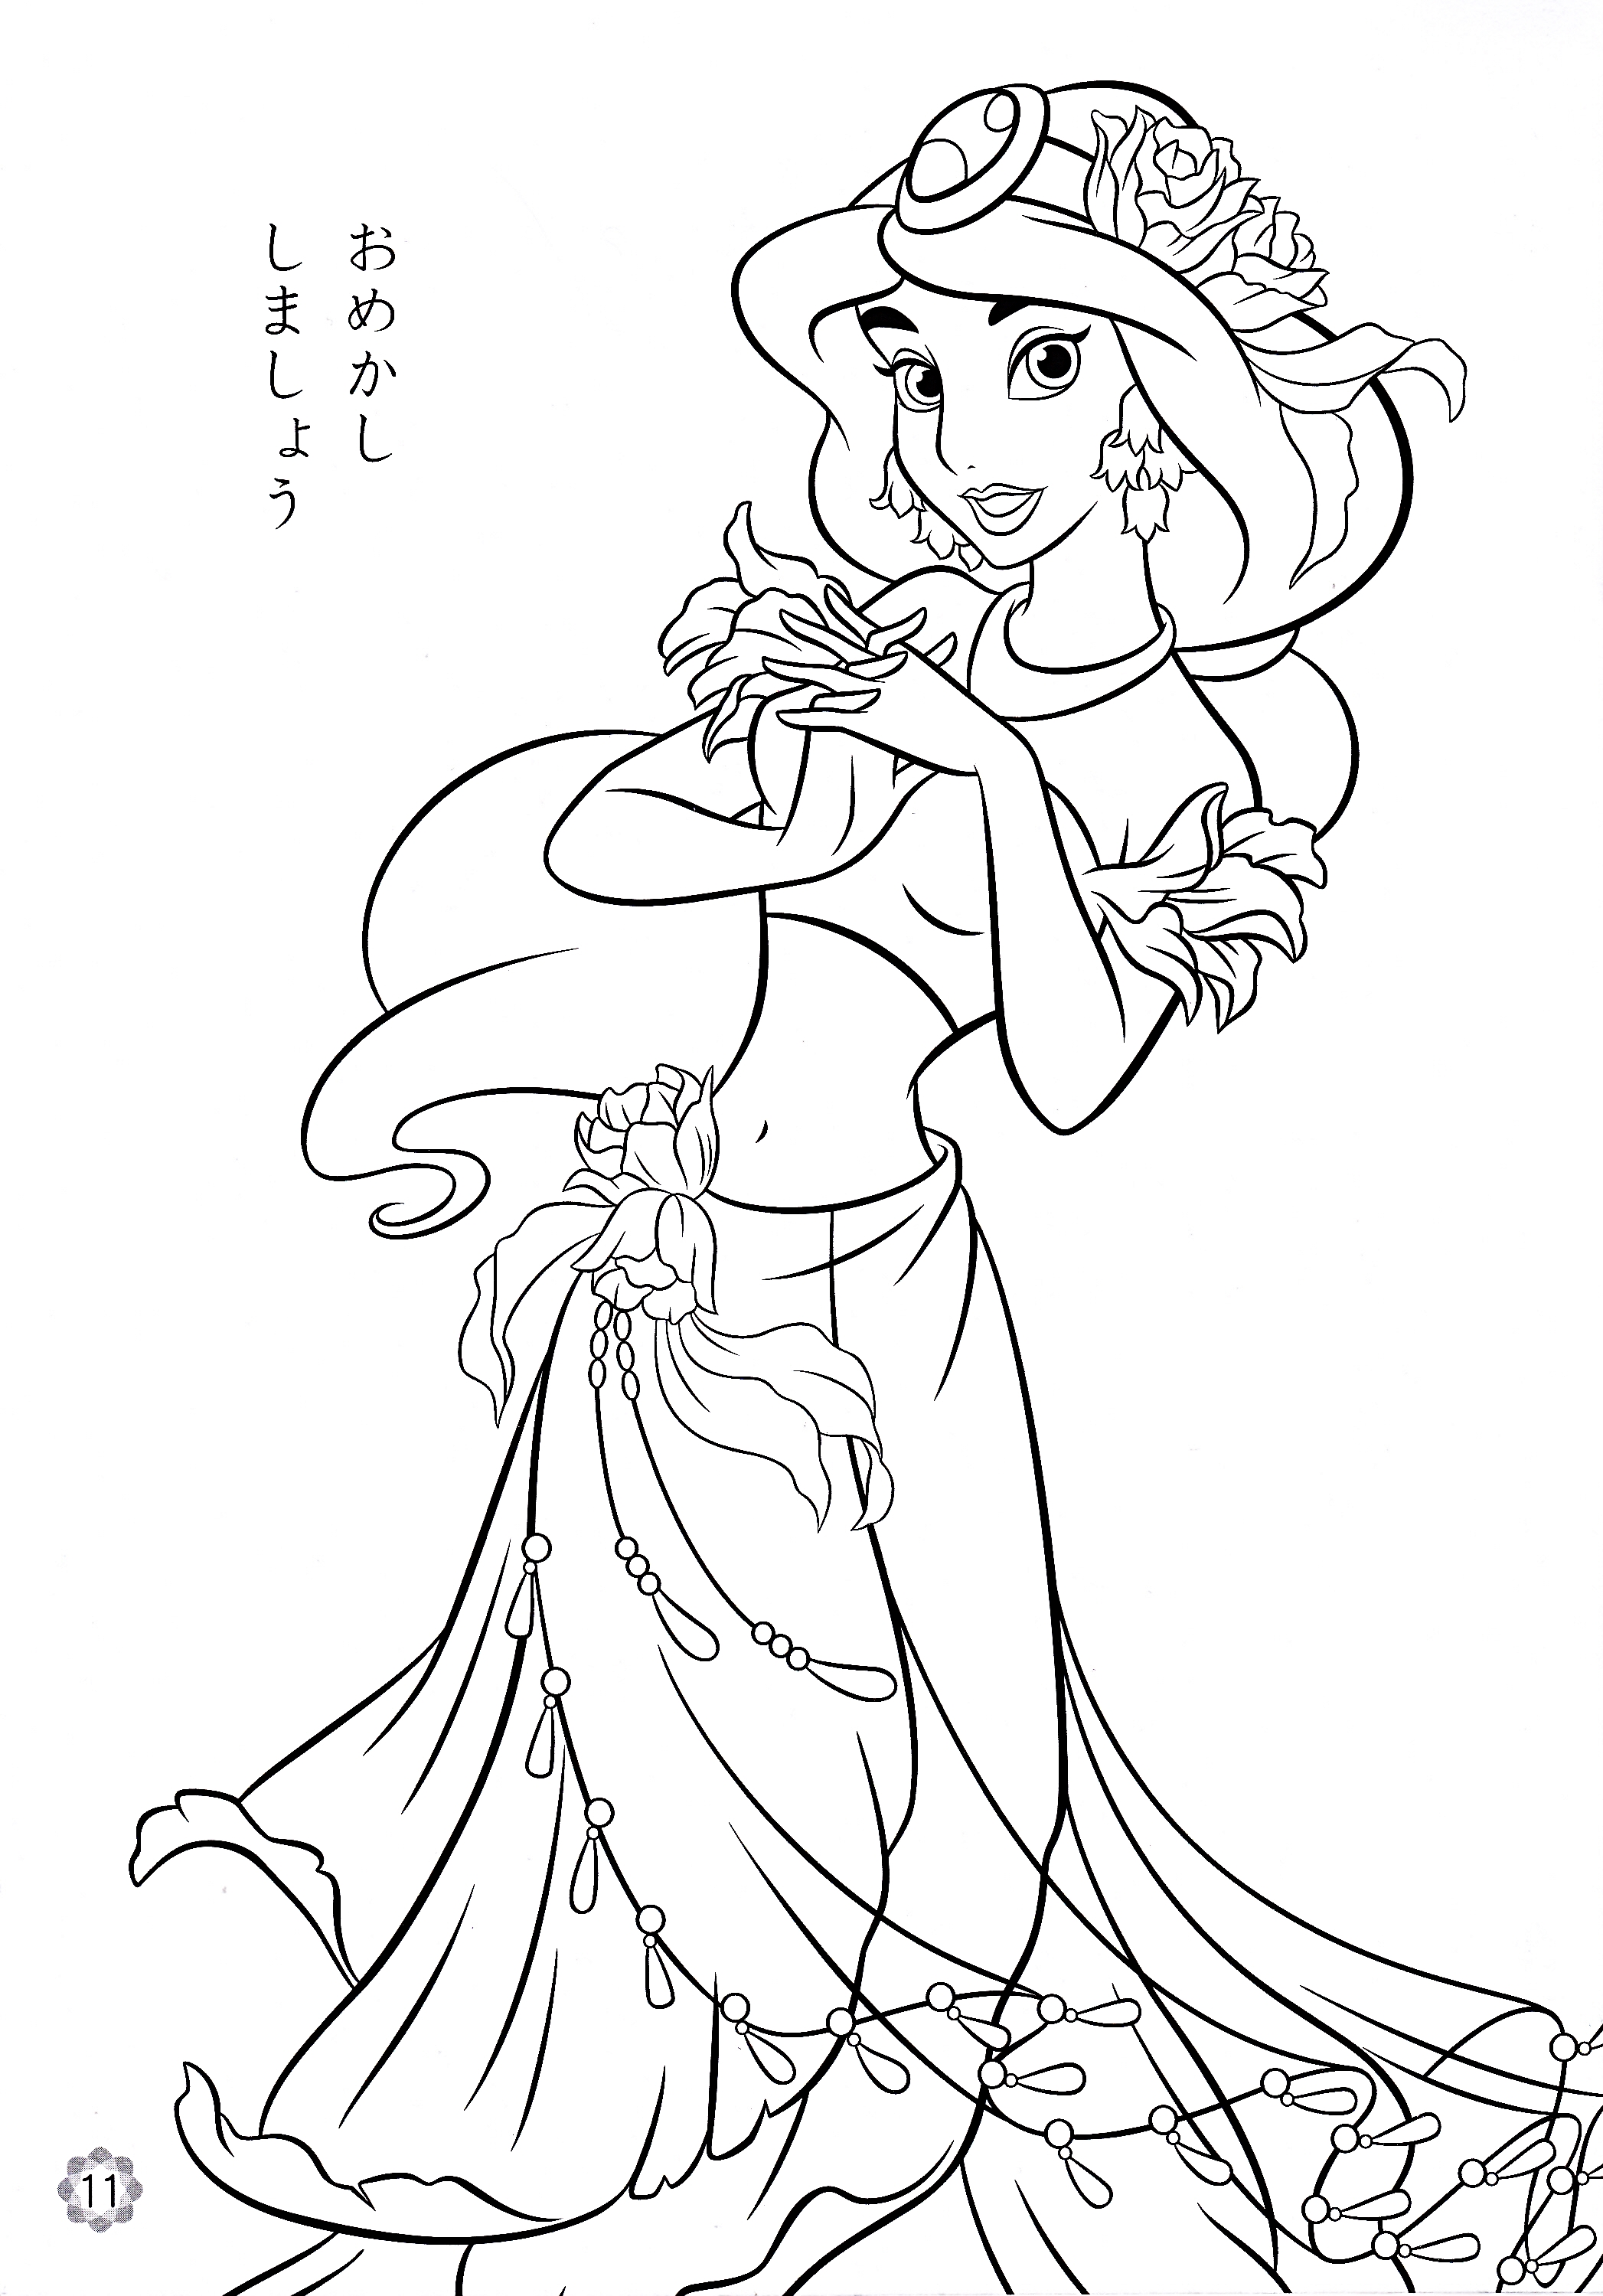 Disney Princess Colouring Only Coloring Pages Disney Princess Coloring Pages For Free Coloring Sheets